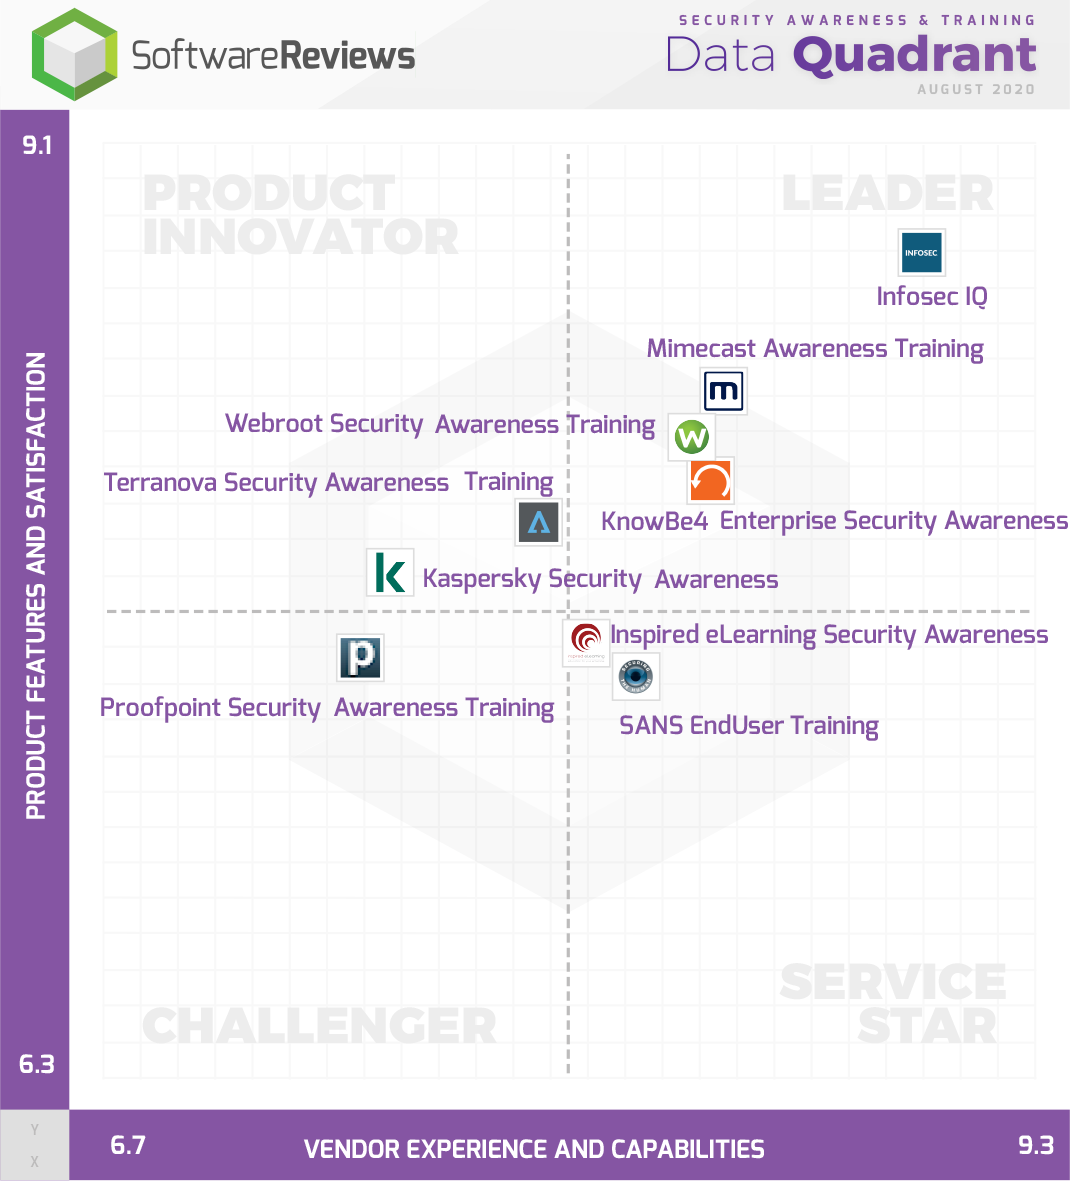 Security Awareness & Training Data Quadrant